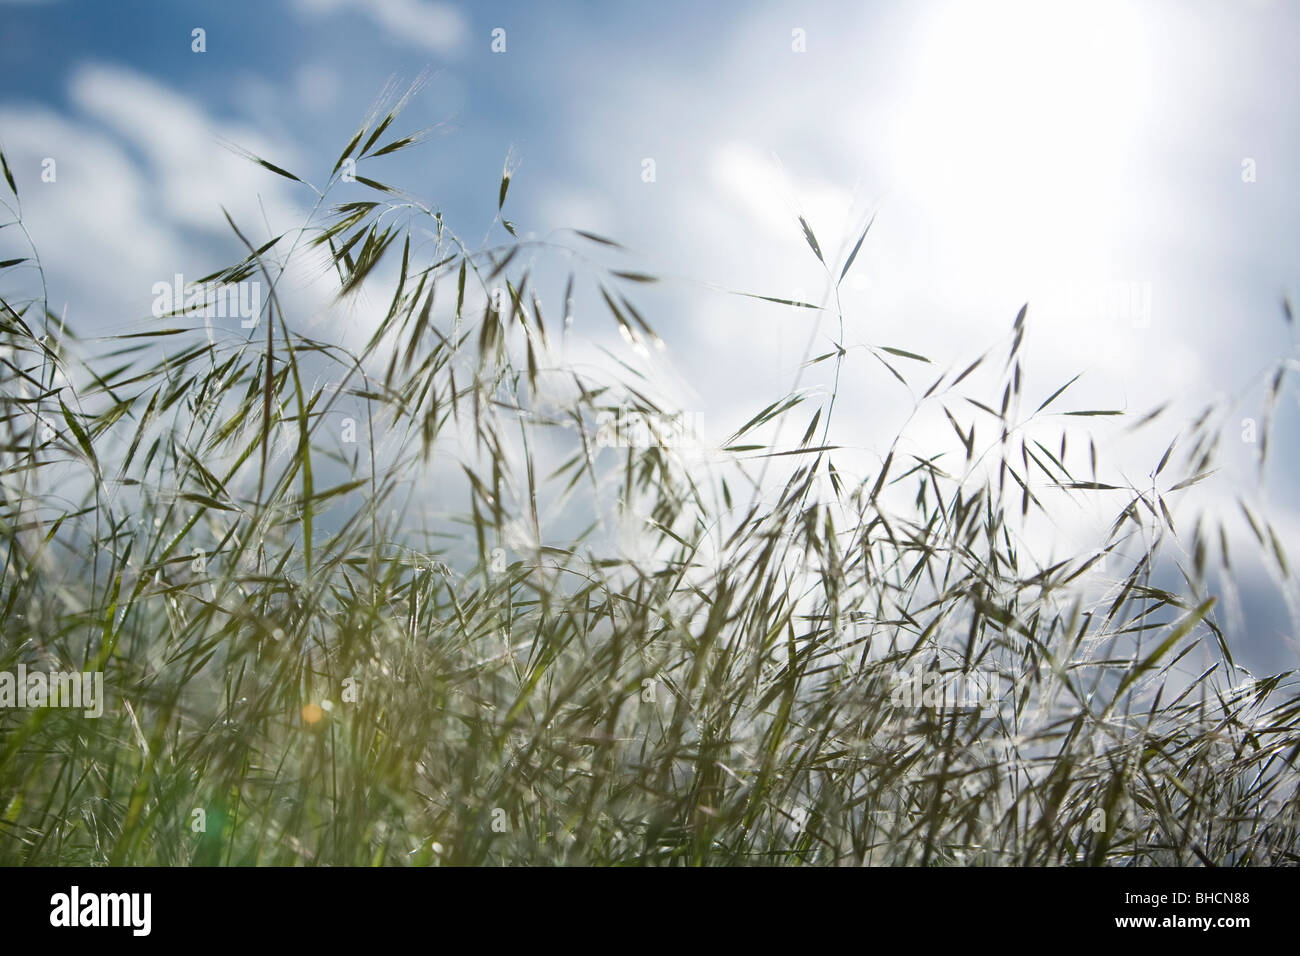 Grass with sky - Stock Image